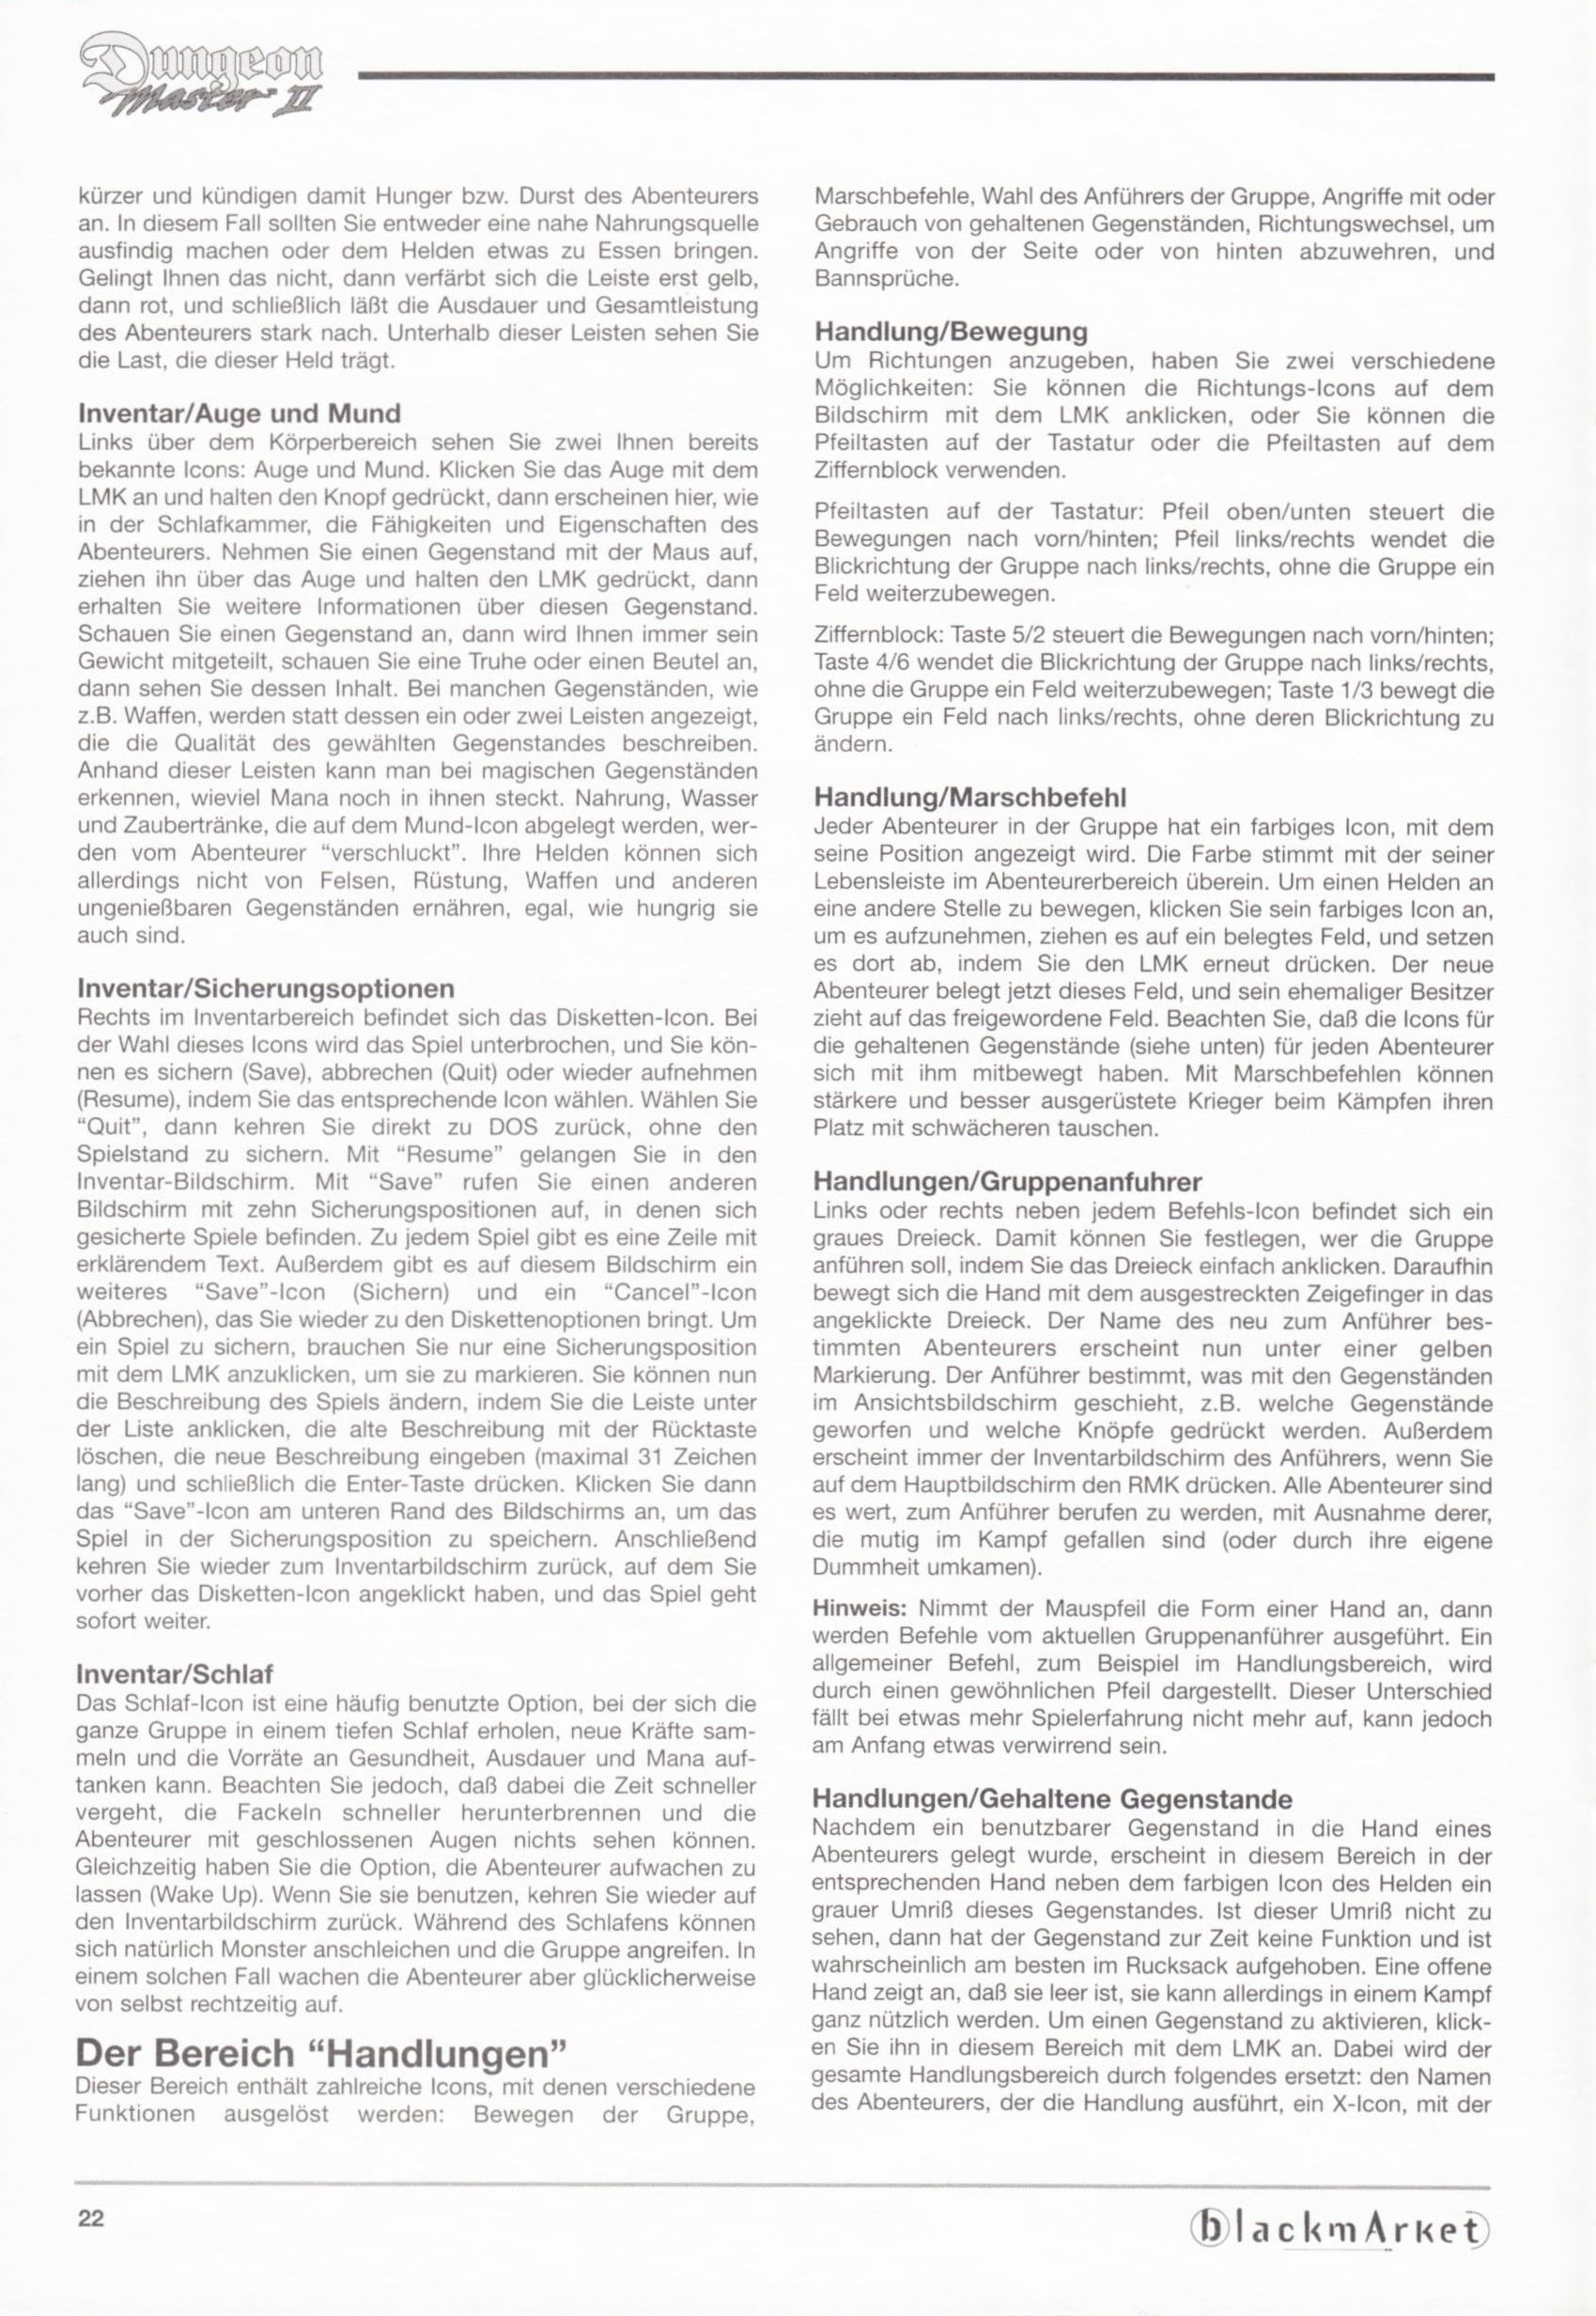 Game - Dungeon Master II - DE - PC - Blackmarket With Manual - Manual - Page 024 - Scan